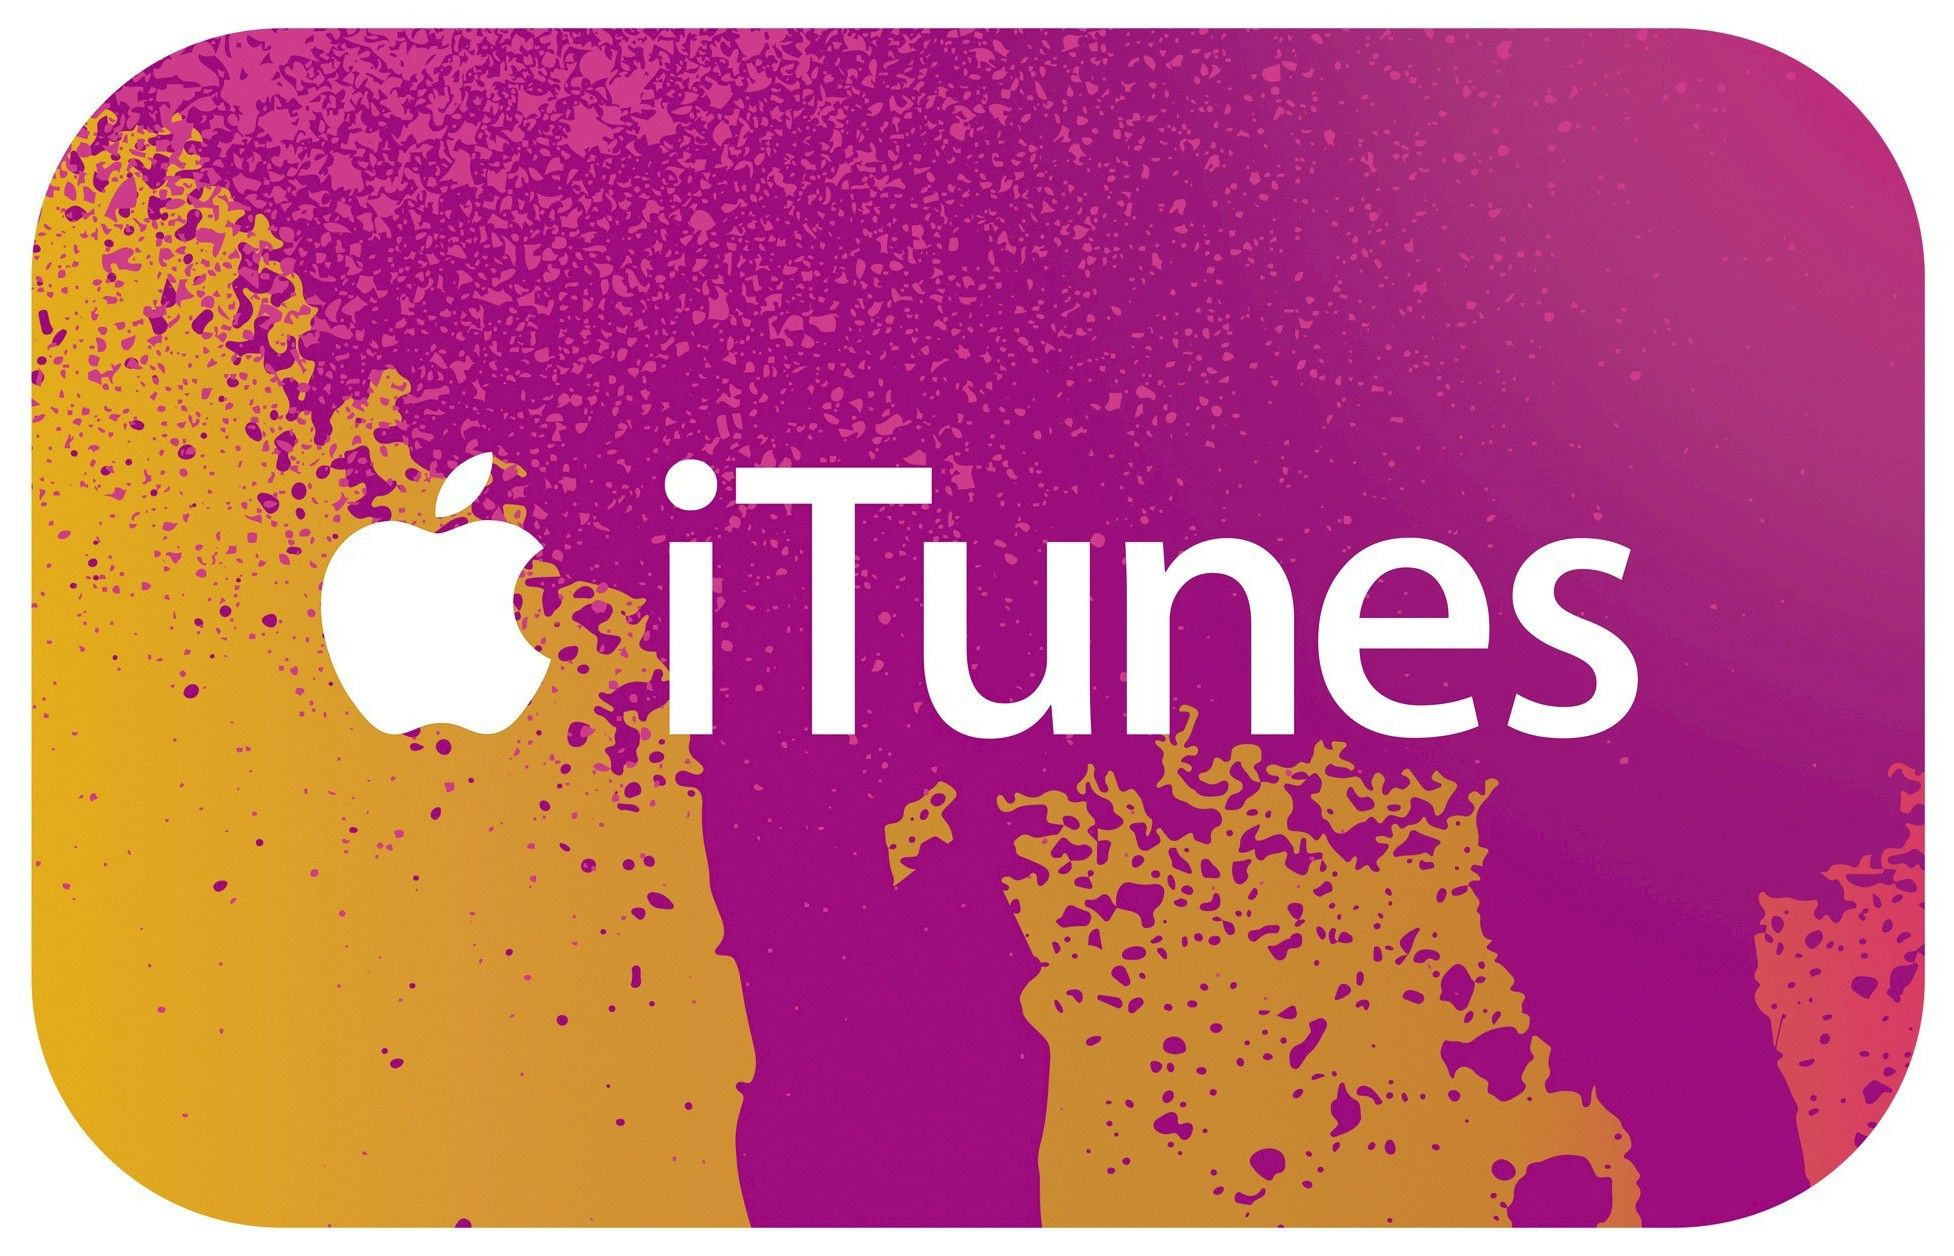 best ideas about itunes gift cards gift cards 17 best ideas about itunes gift cards gift cards starbucks gift card and valentines day card templates